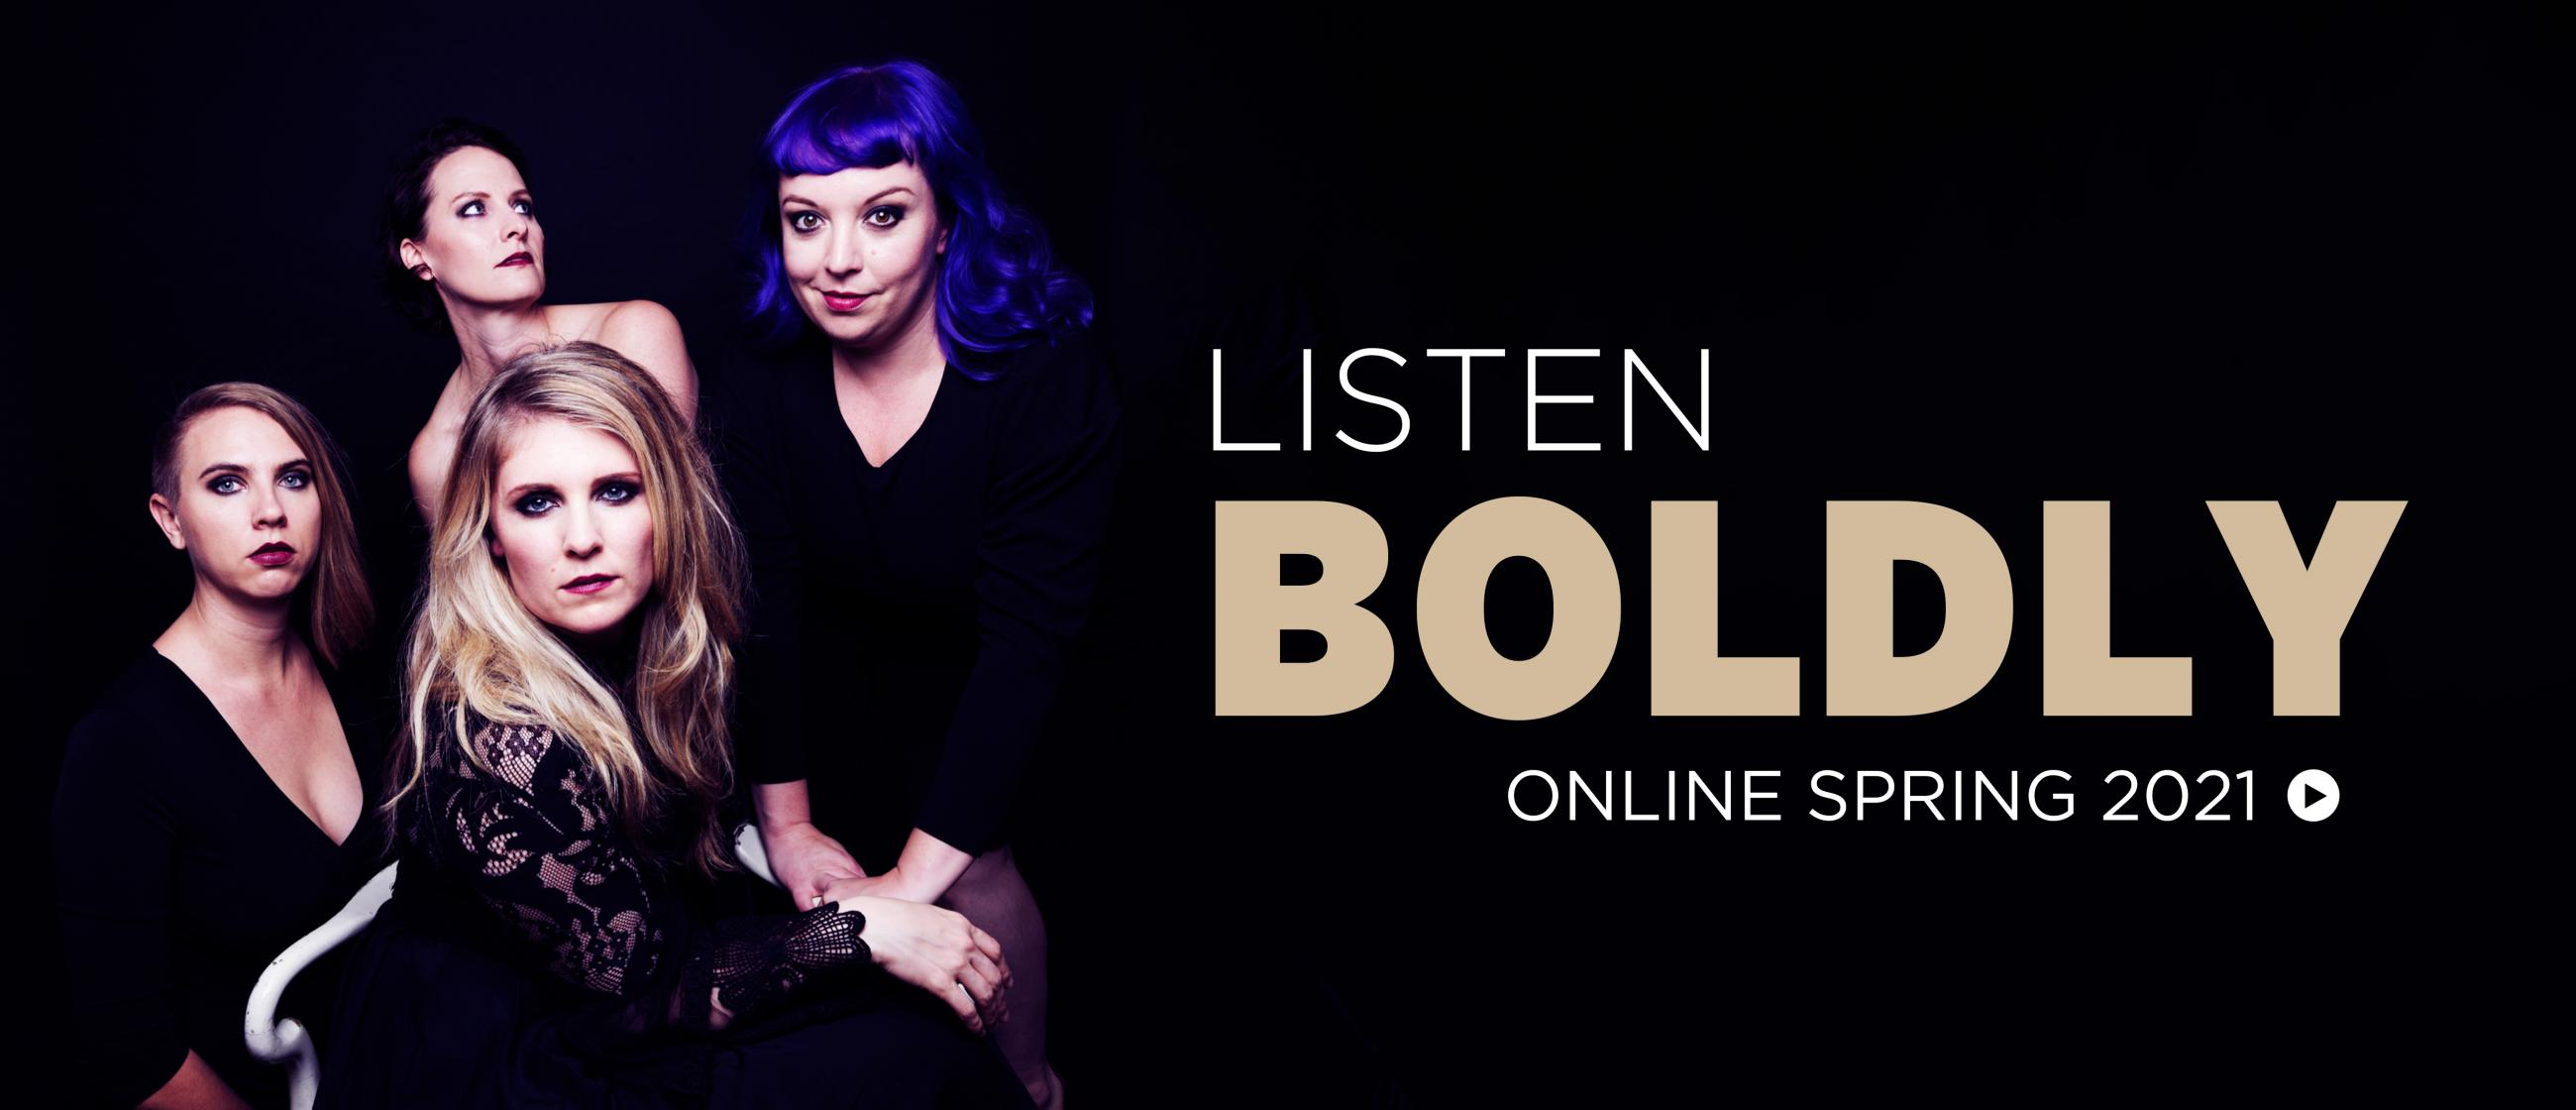 Photo of Quince, four women in black standing and sitting closely together. They have dark eye makeup, and one has purple hair. Text reads Listen Boldly, Online Spring 2021.